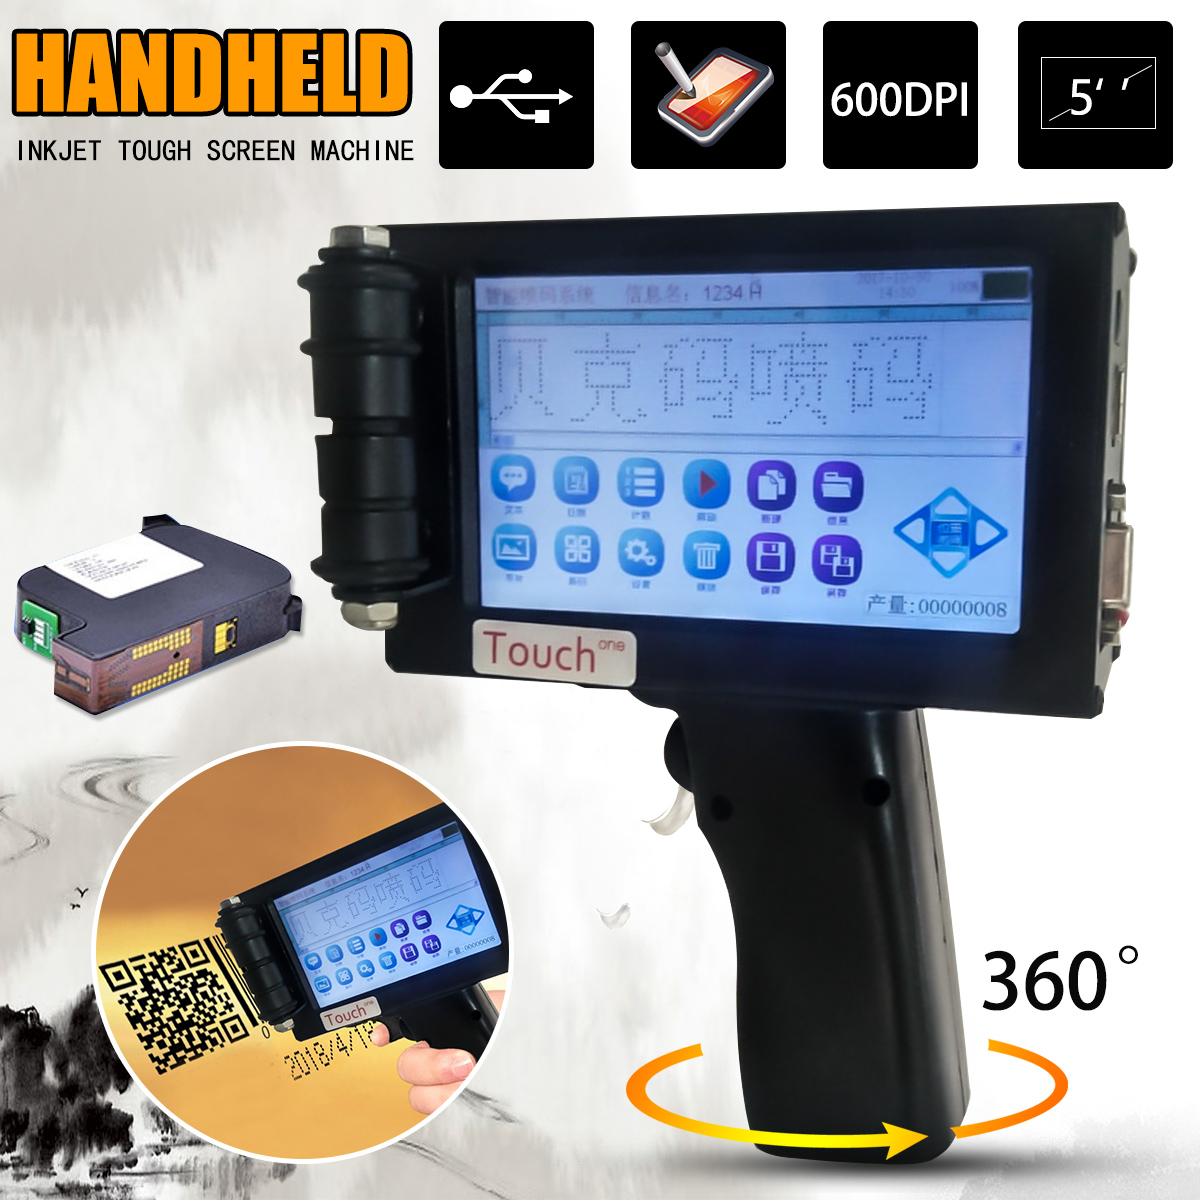 5 inches Handheld Intelligent Inkjet Printer Touch Screen 360T Ink Date Coder Coding machine + Quick-drying ink cartridge цена